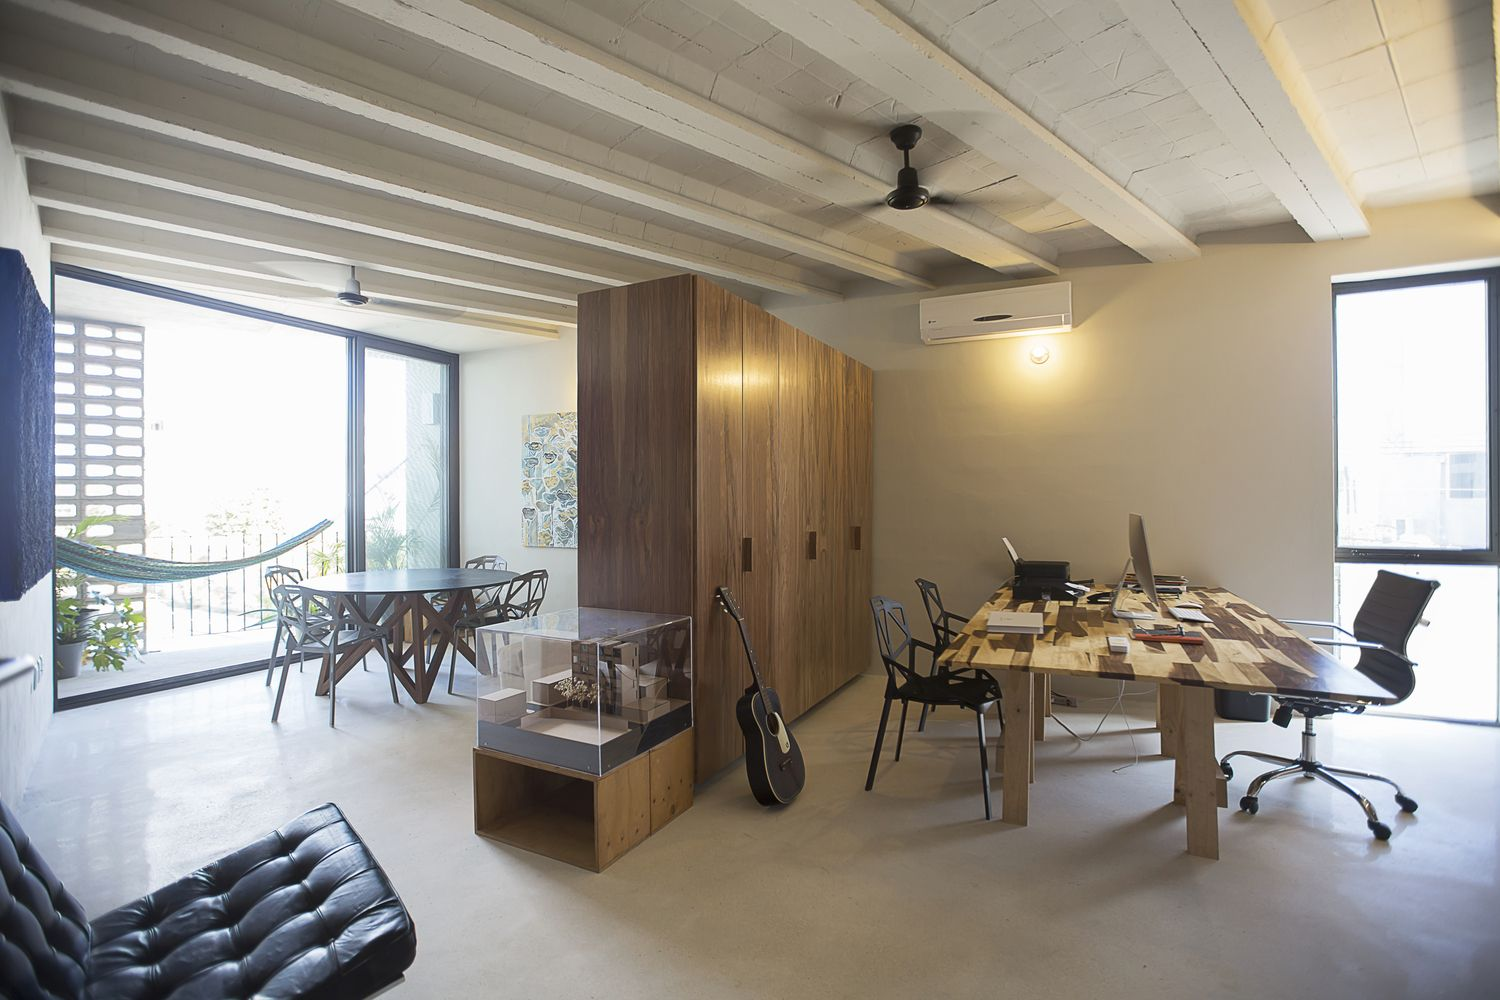 Gallery Of Donceles Studios Jc Arquitectura O Gorman  # Muebles Betanzos